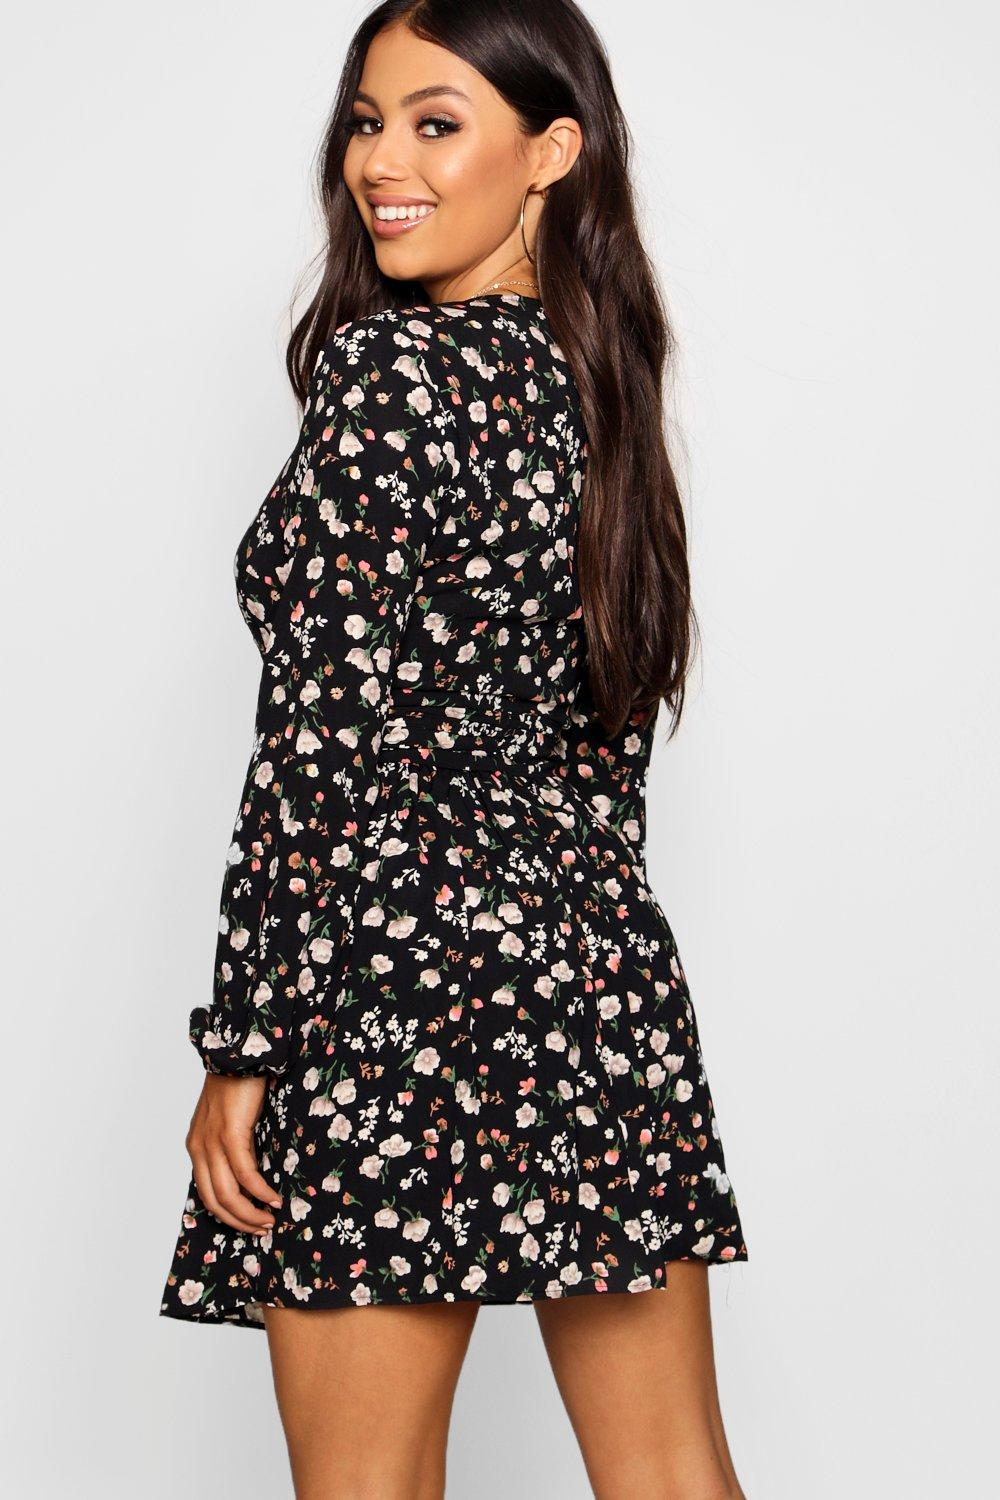 Dress Floral Sleeve Woven Petite Long Skater ZqHnpT